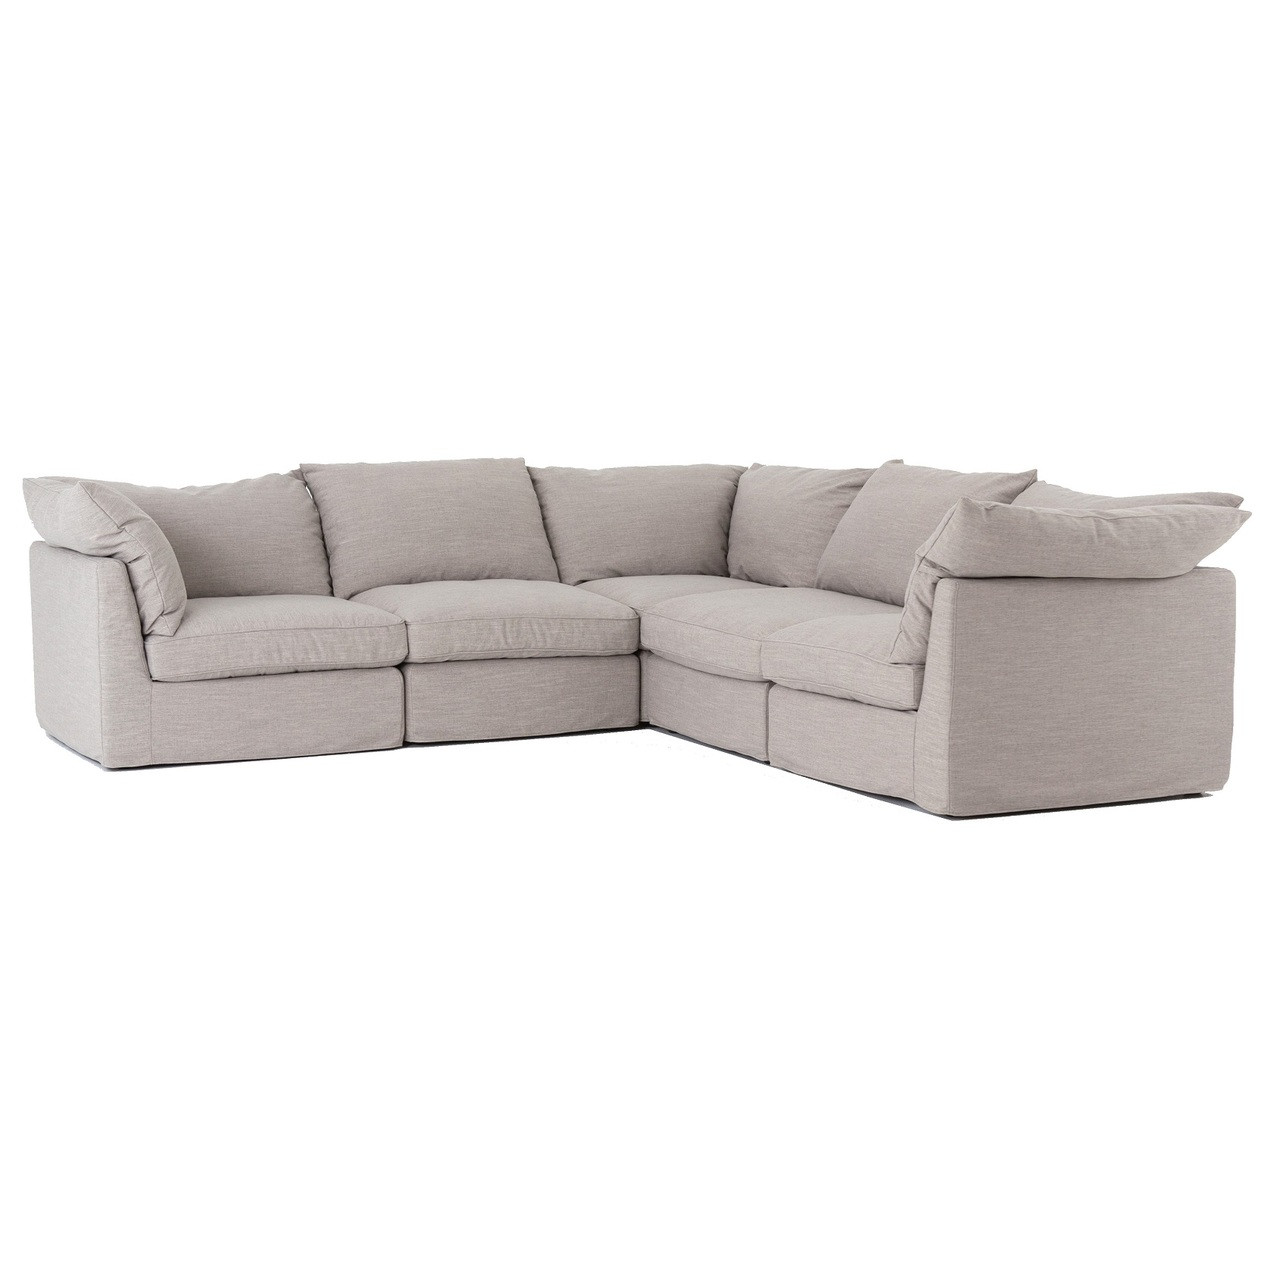 Paul Coastal Grey L-Shaped 5-PC Modular Corner Sectional